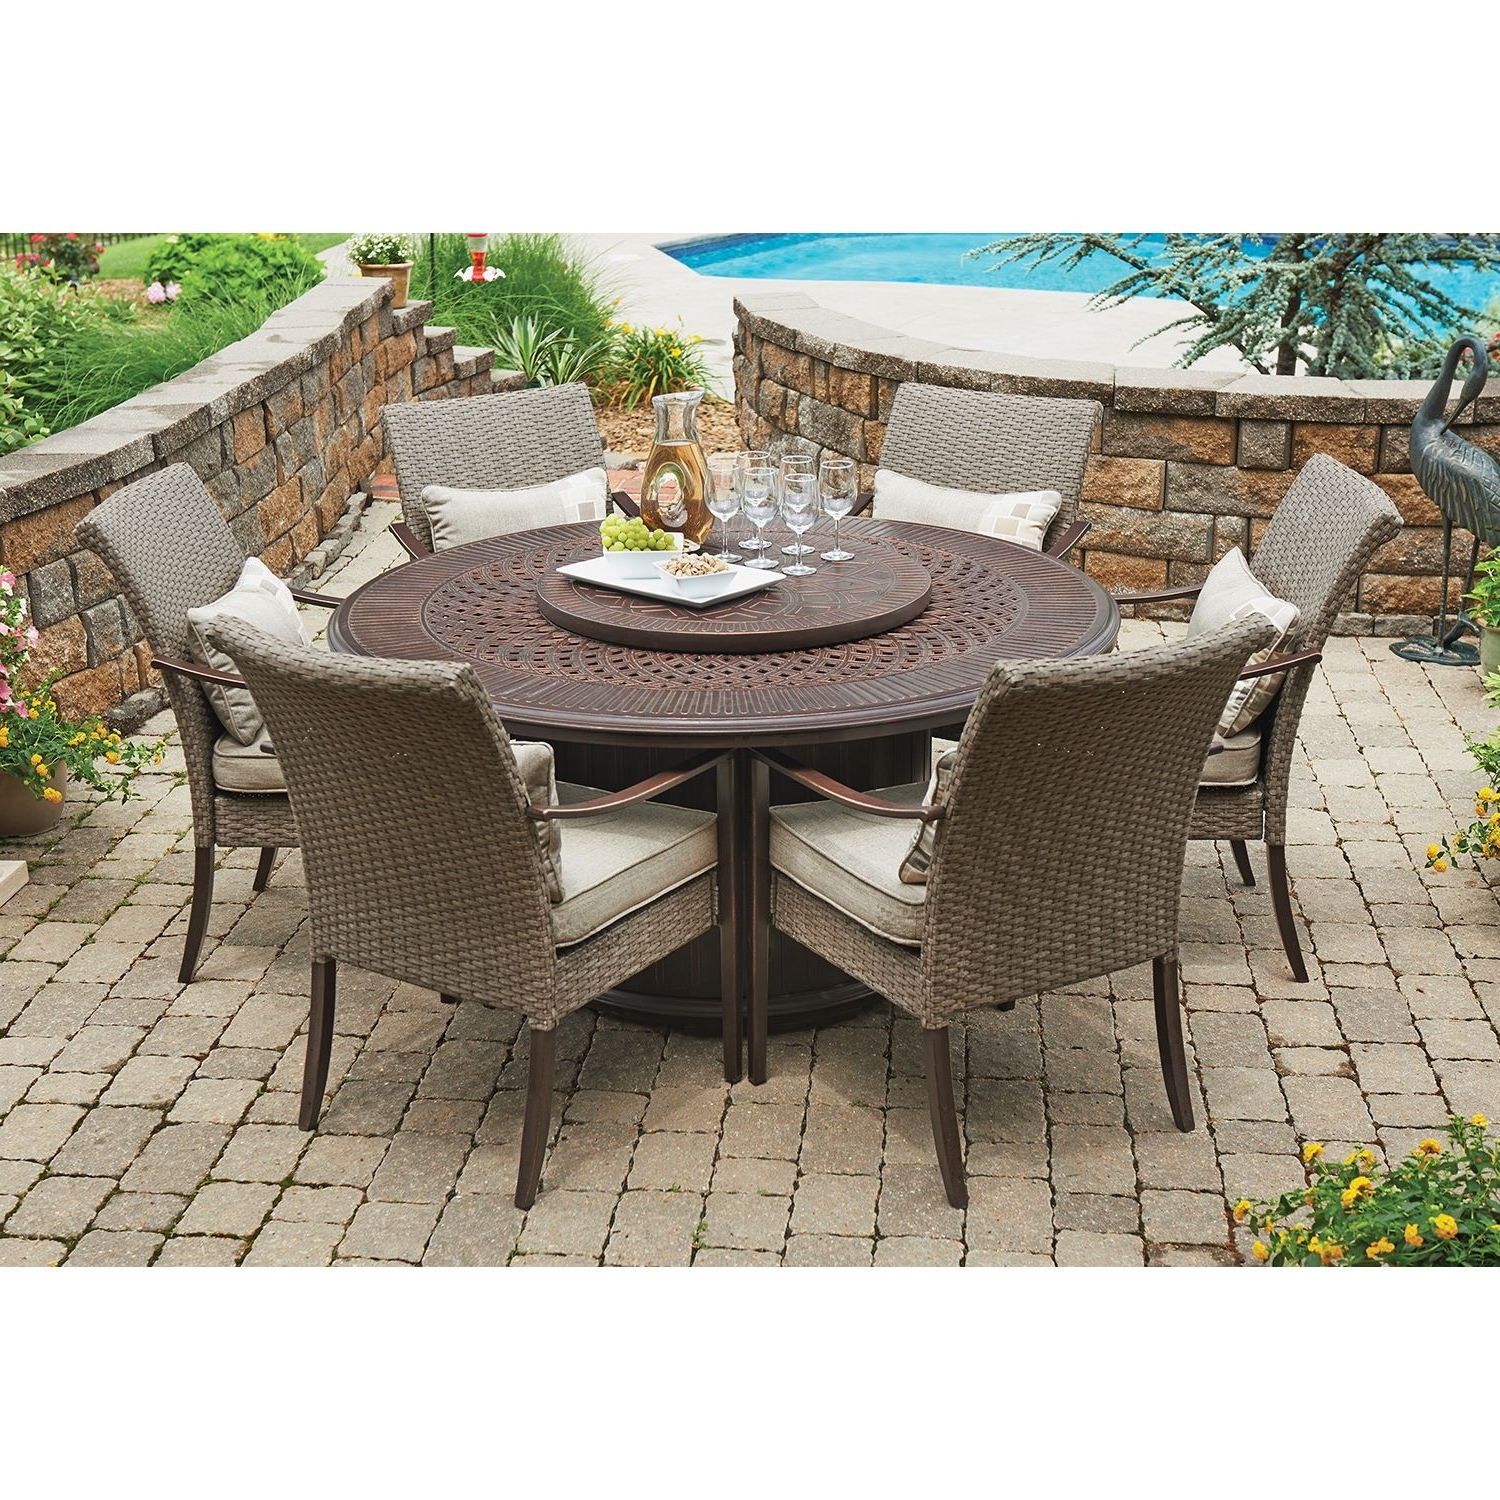 Member's Mark Fairbanks 8 Piece Fire Pit Dining Set – Sam's Club In Latest Sam's Club Chaise Lounge Chairs (View 5 of 15)